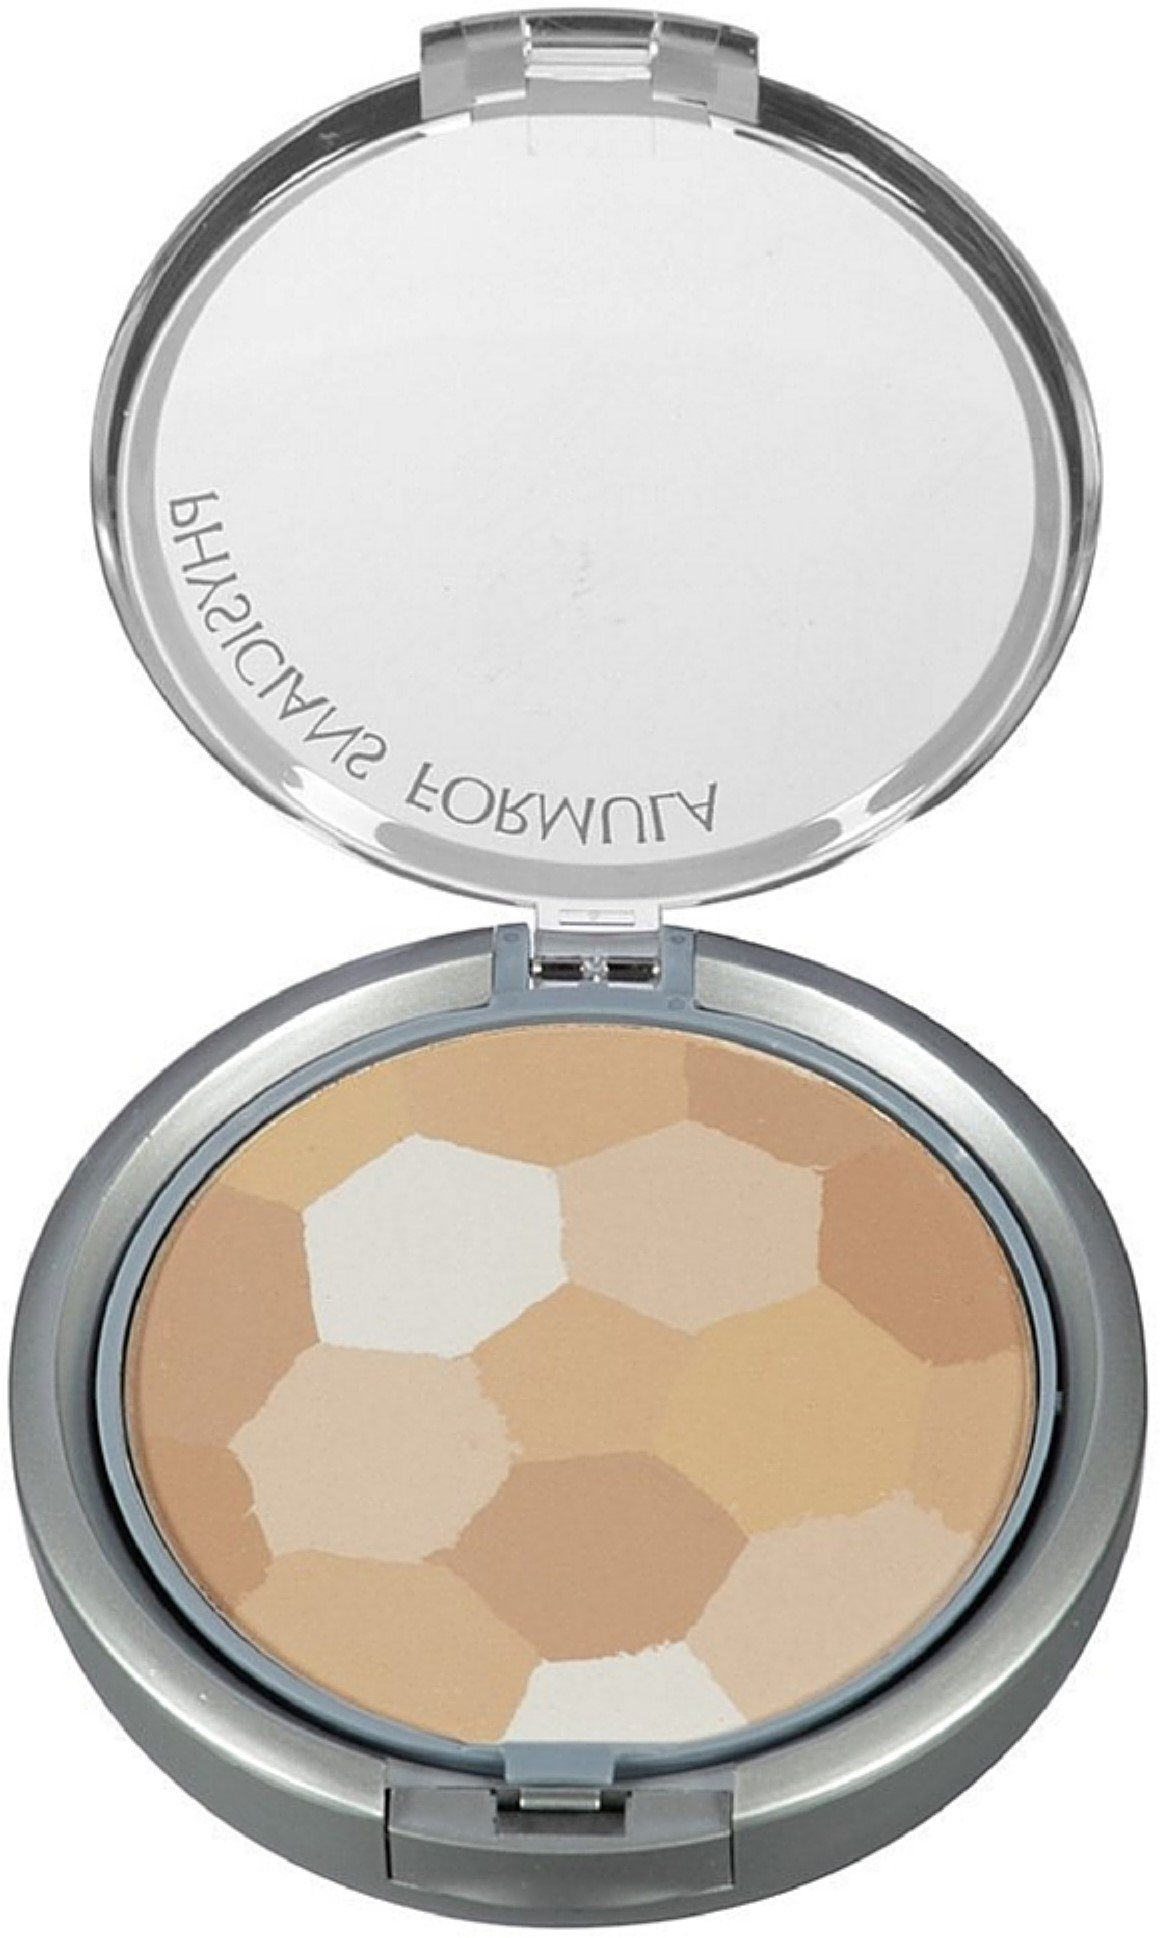 Physician's Formula Multi-Colored Pressed Powder Palette, Beige [3868] 0.30 oz (Pack of 3)